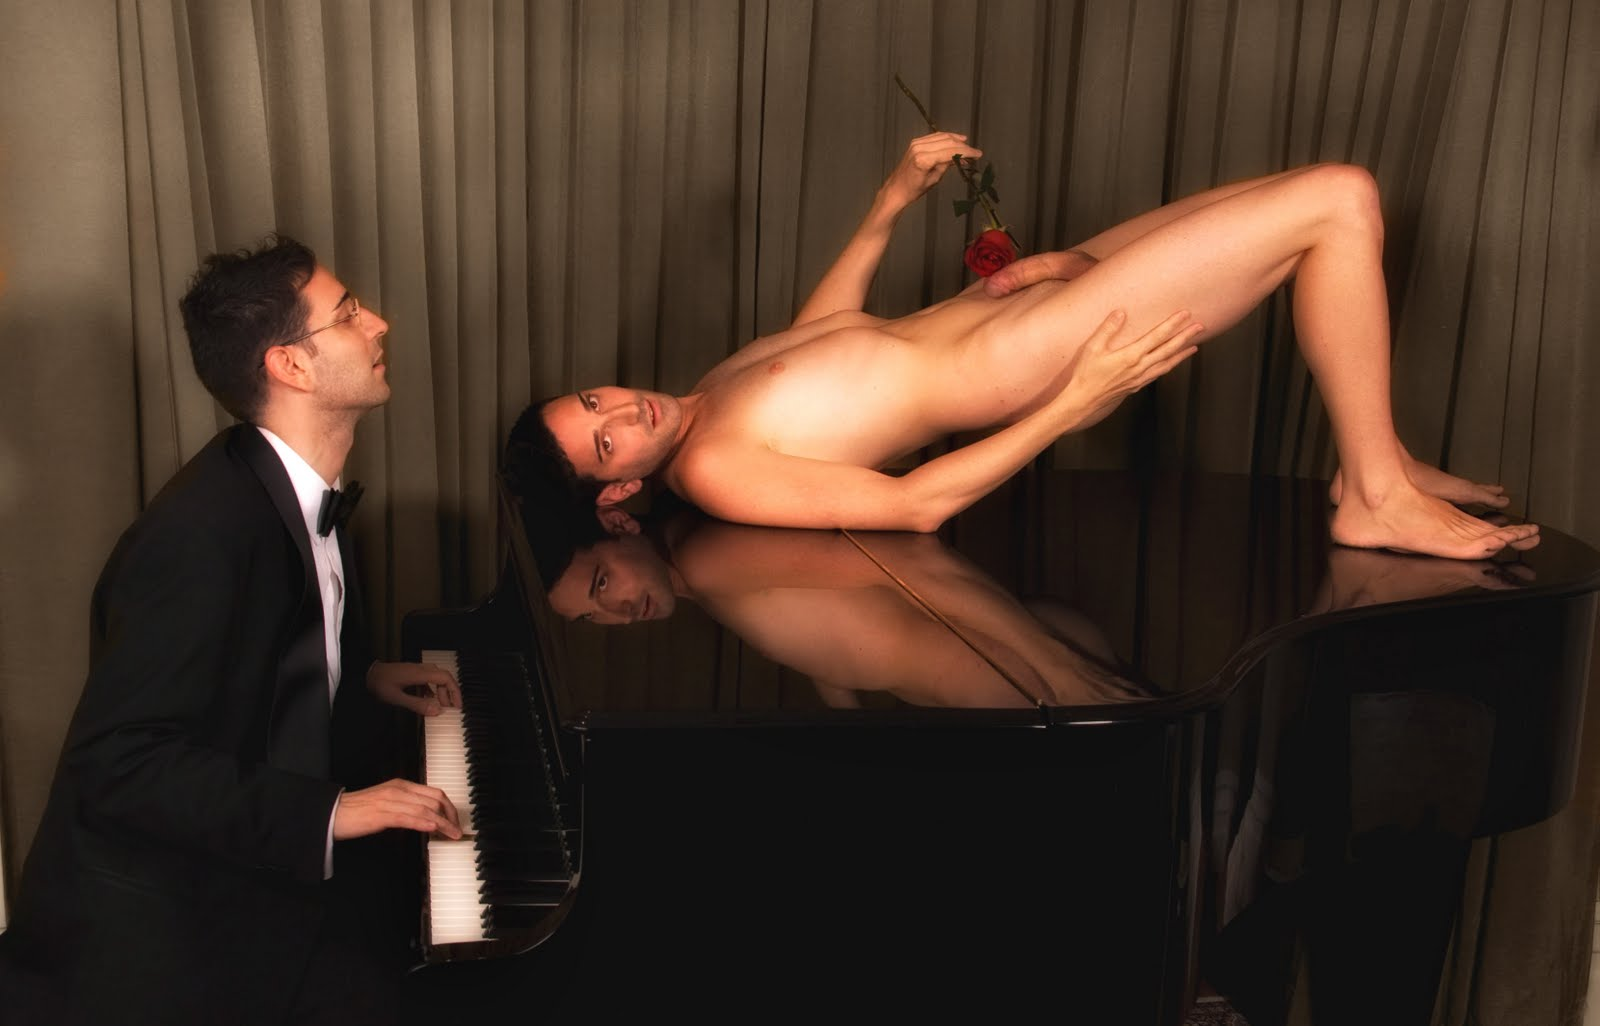 H2H-Images It Is Exciting To Find A Good Pianist-8361